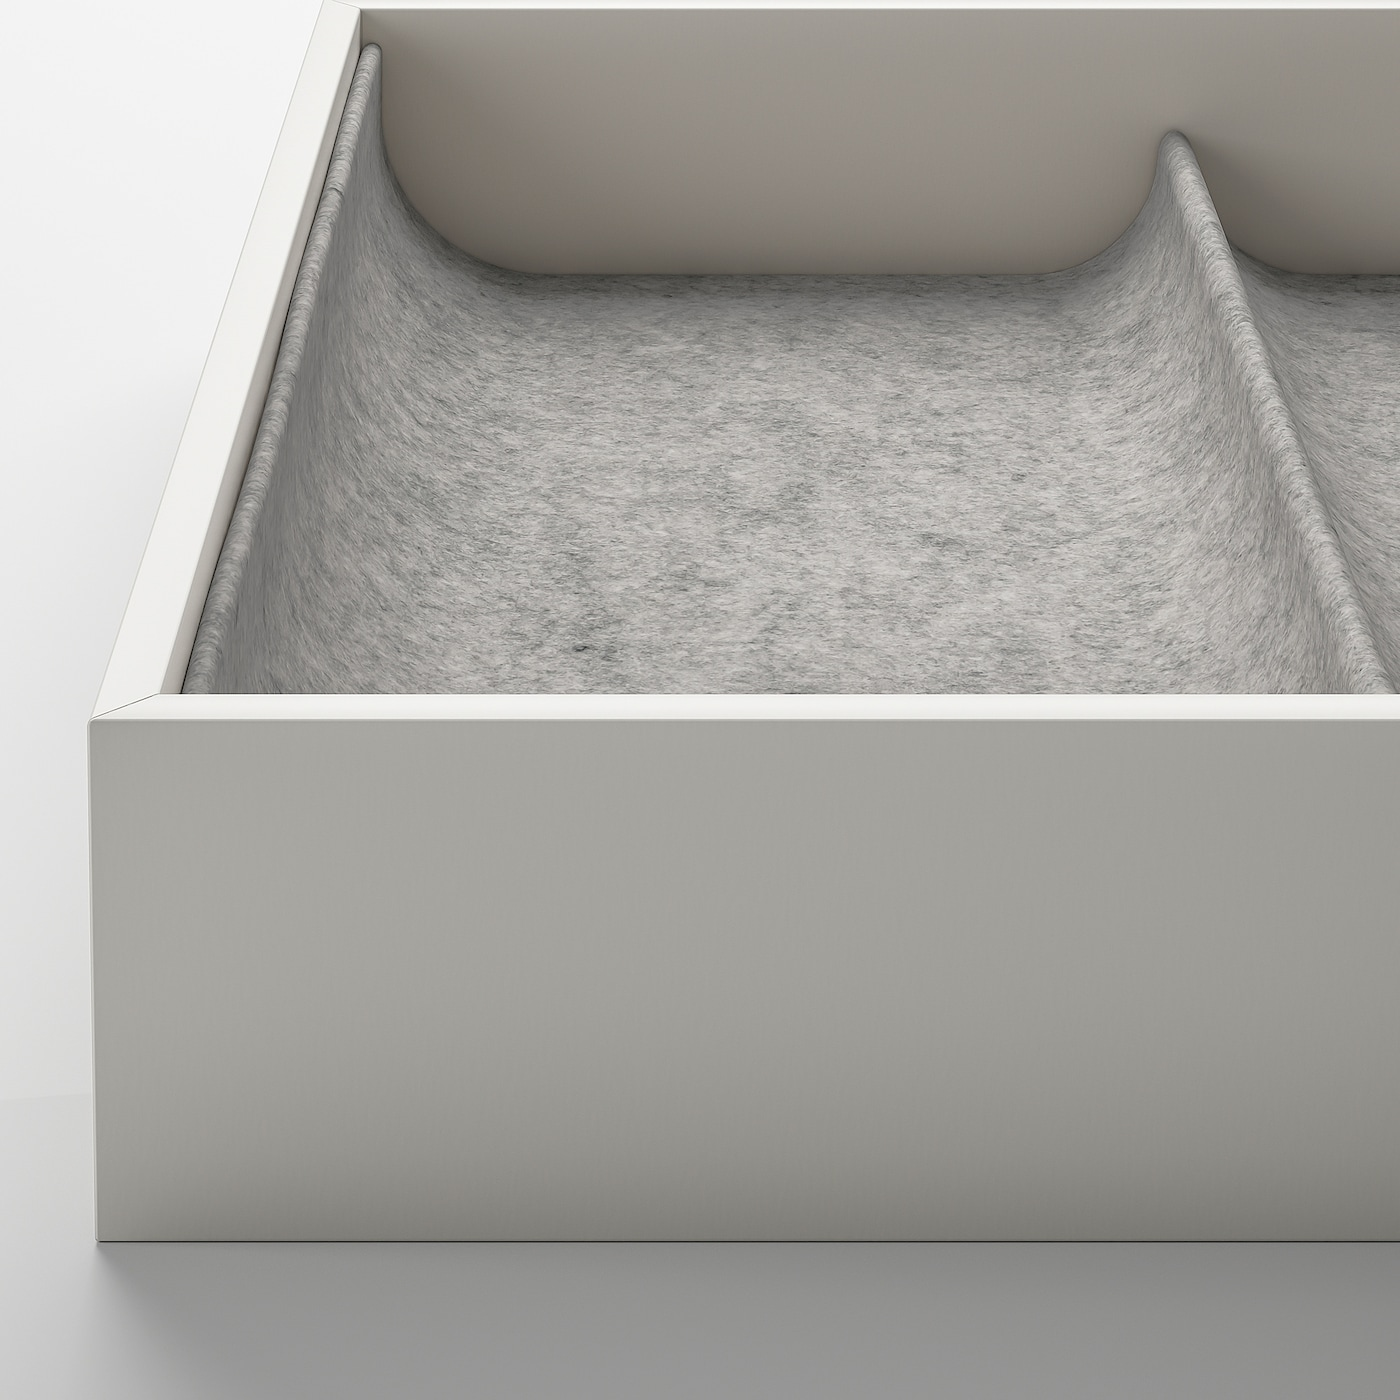 KOMPLEMENT Insert with 4 compartments, light grey, 25x53x5 cm